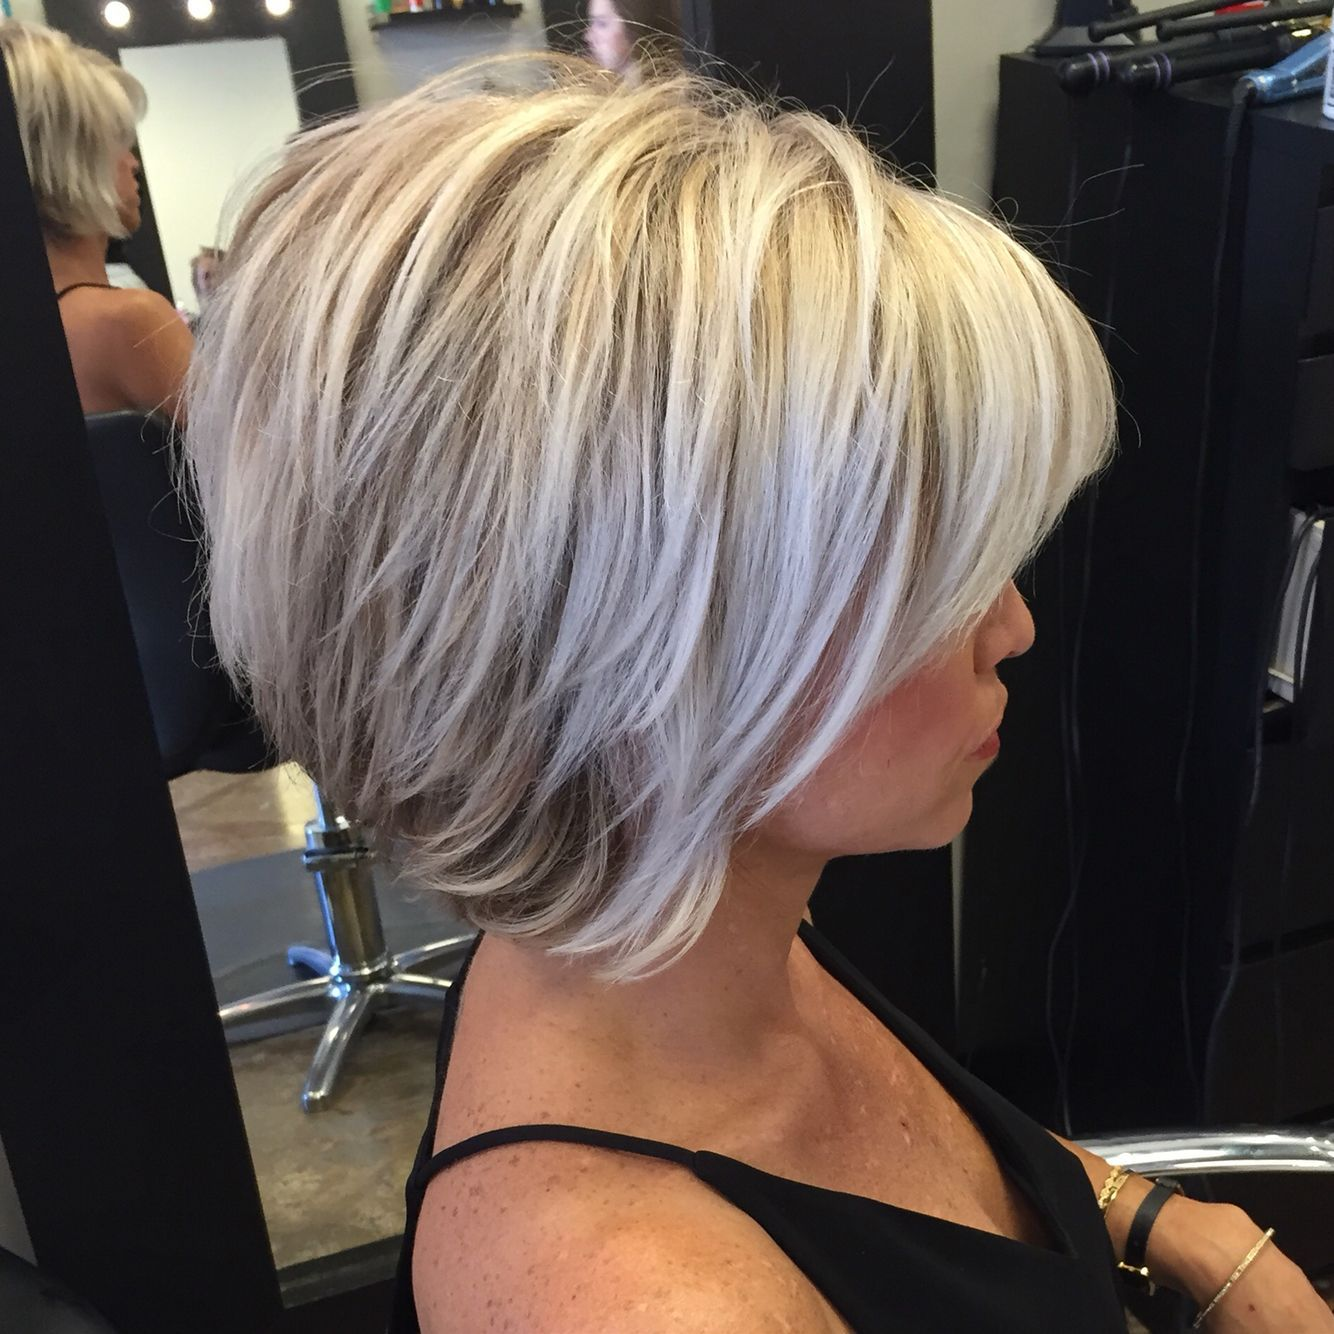 Short bob short hair pinterest short blonde short bobs and